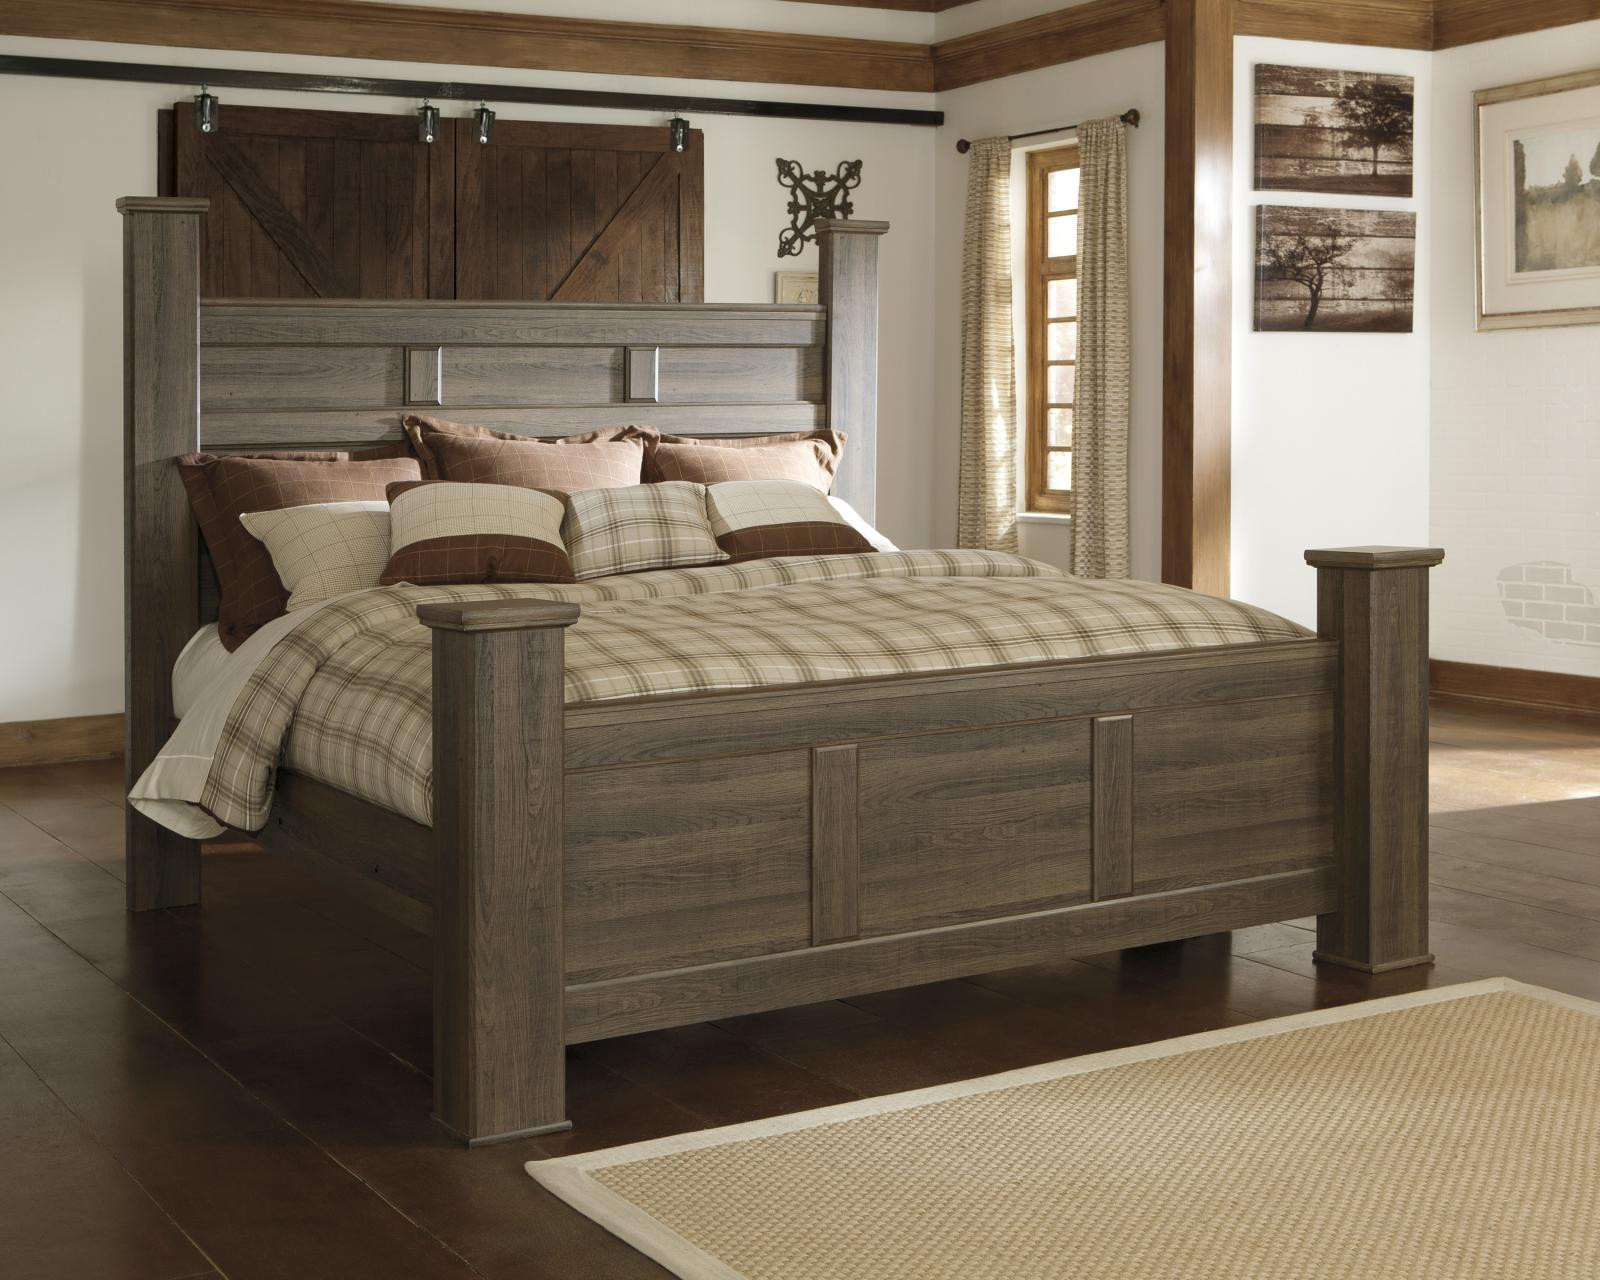 Best ideas about Ashley Bedroom Furniture . Save or Pin Ashley Juararo B251 King Size Poster Bedroom Set 2 Night Now.